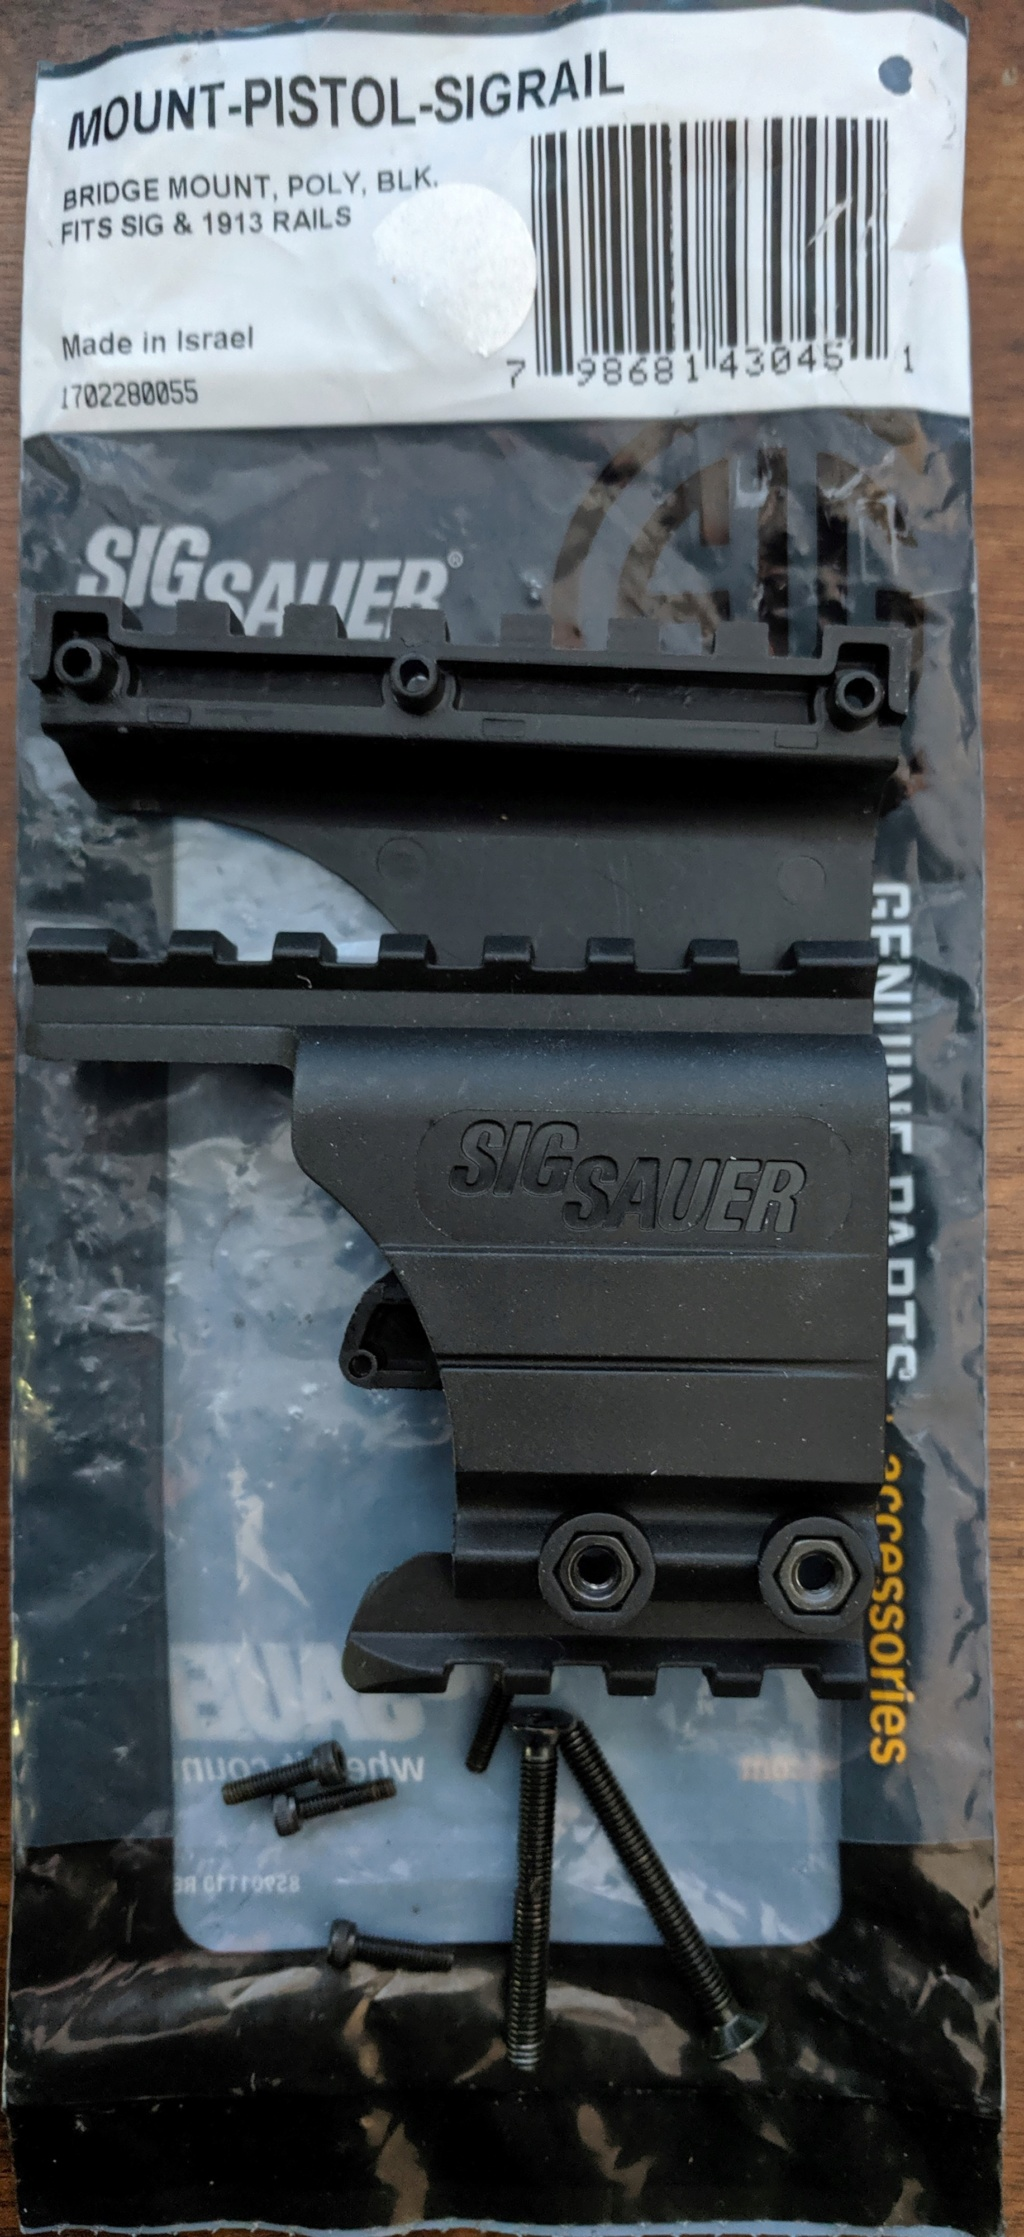 SOLD Red Dot Sights Img_2194